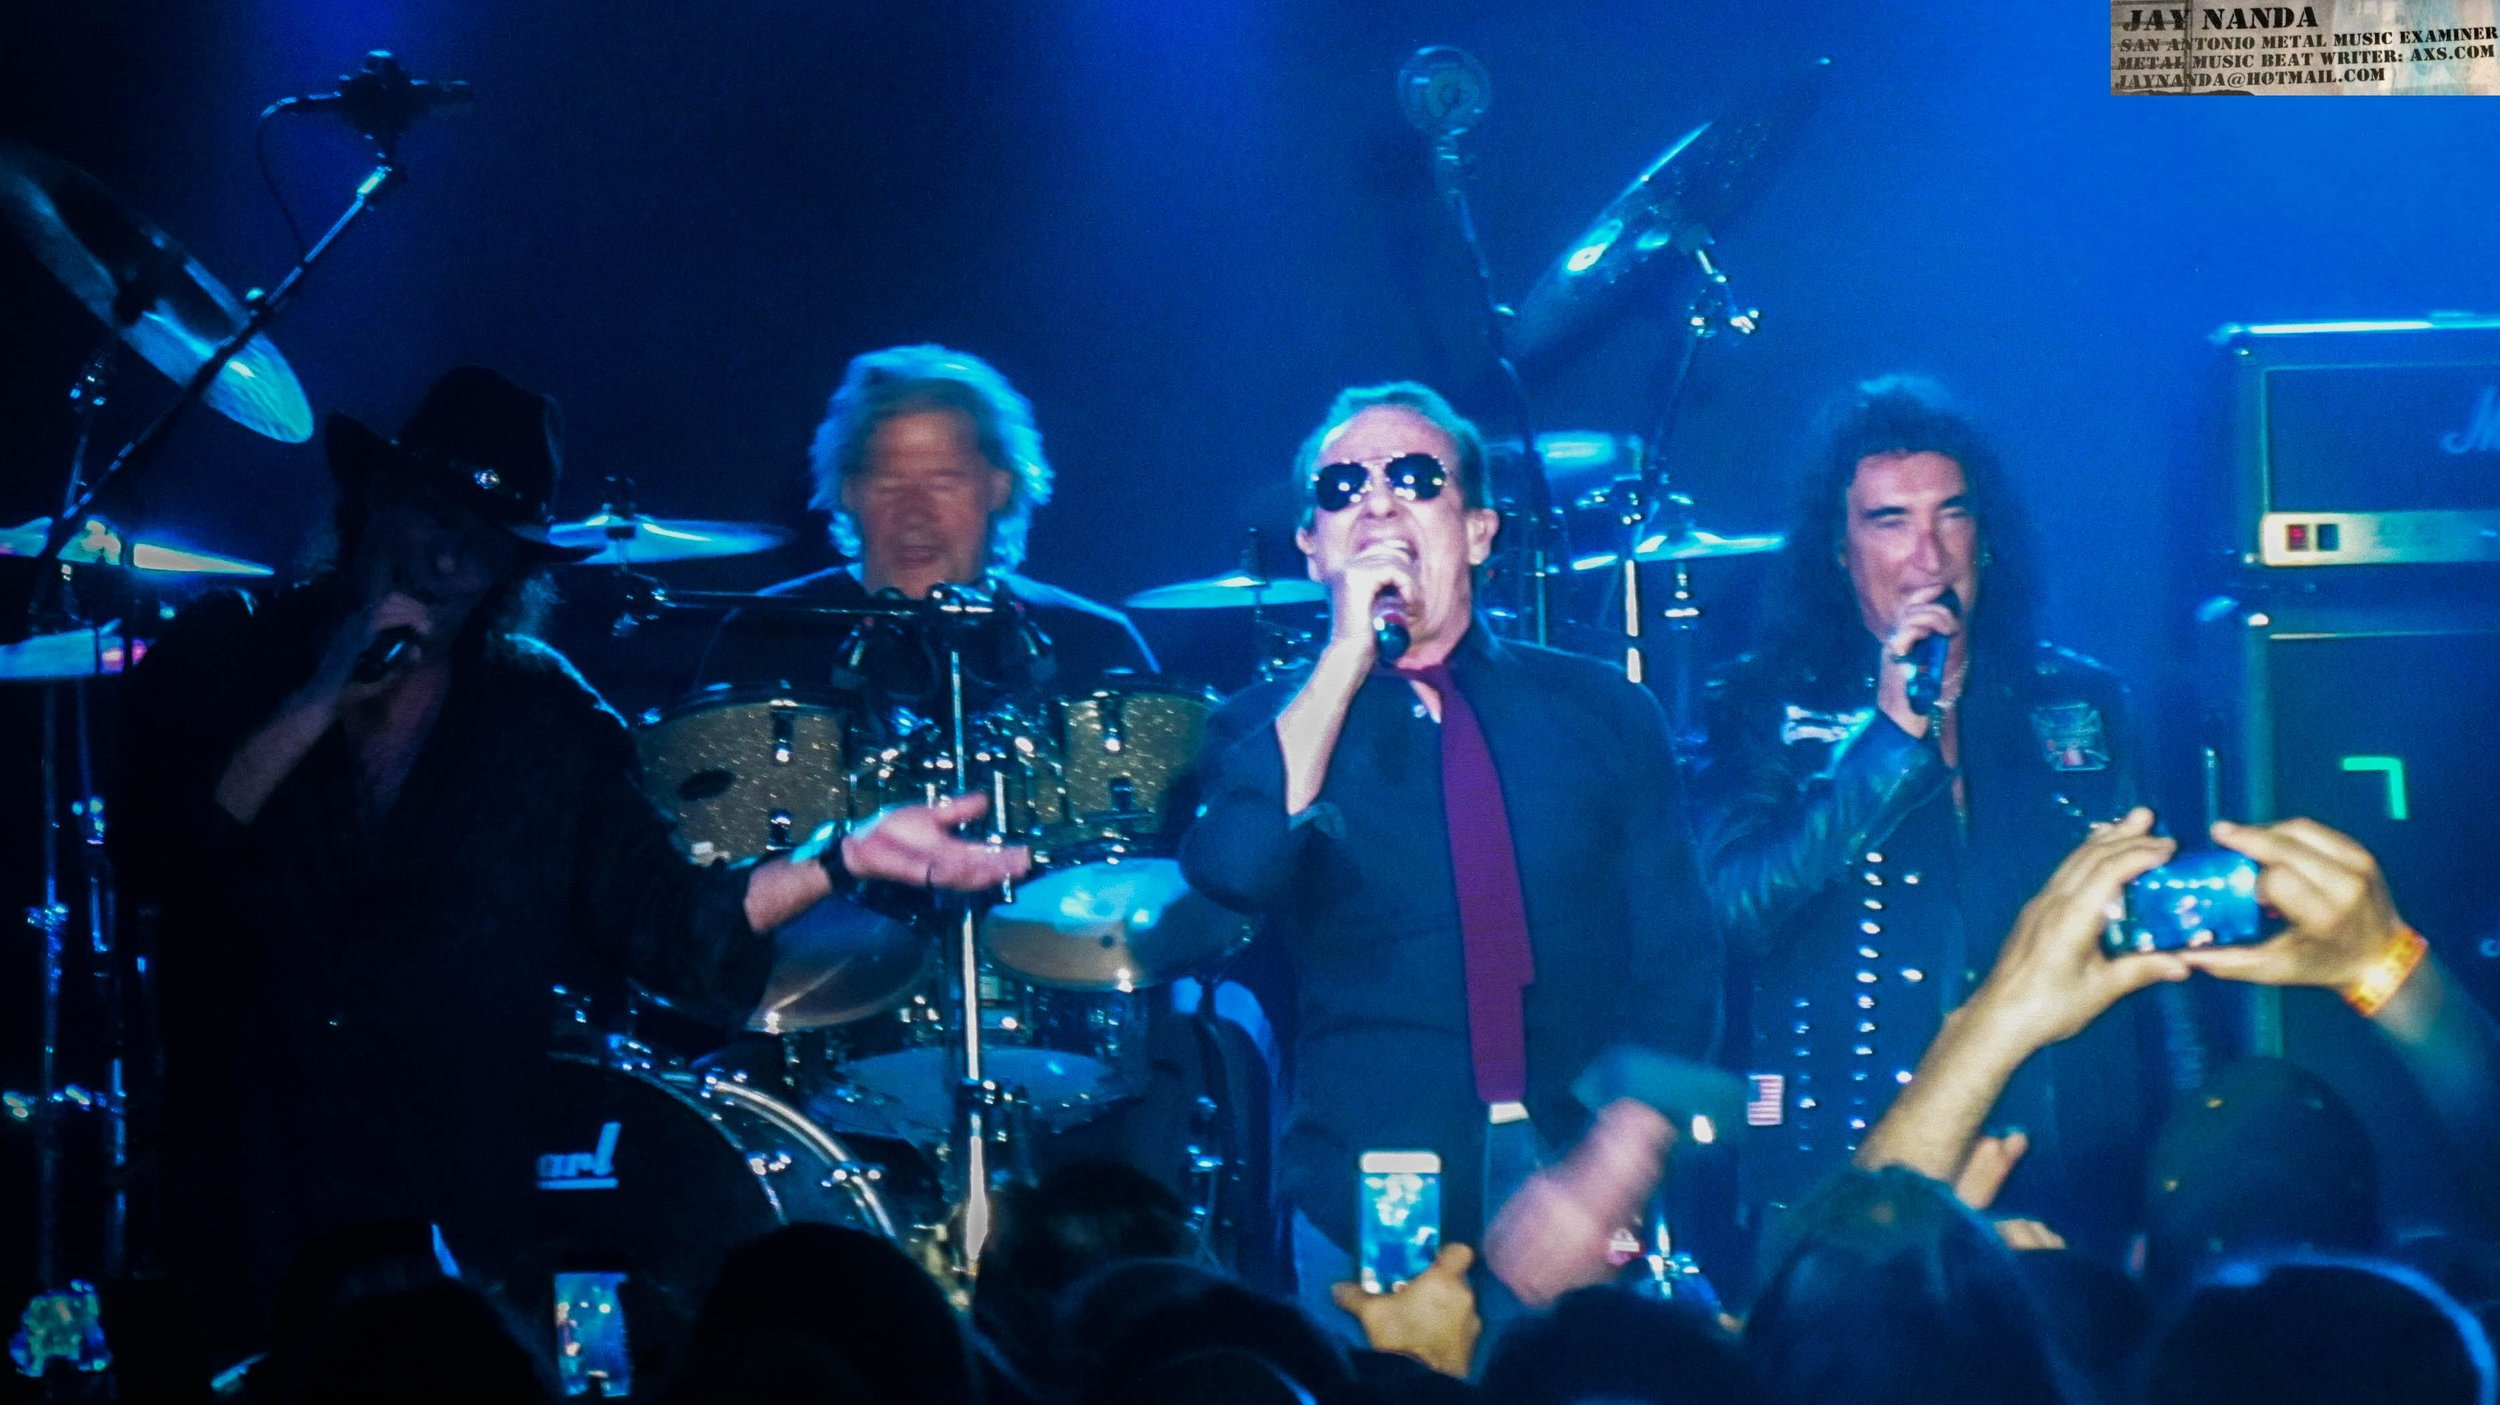 Singers Gary Barden (from left), Graham Bonnet and Robin McAuley join drummer Ted McKenna in performing one of 30 songs on the night.